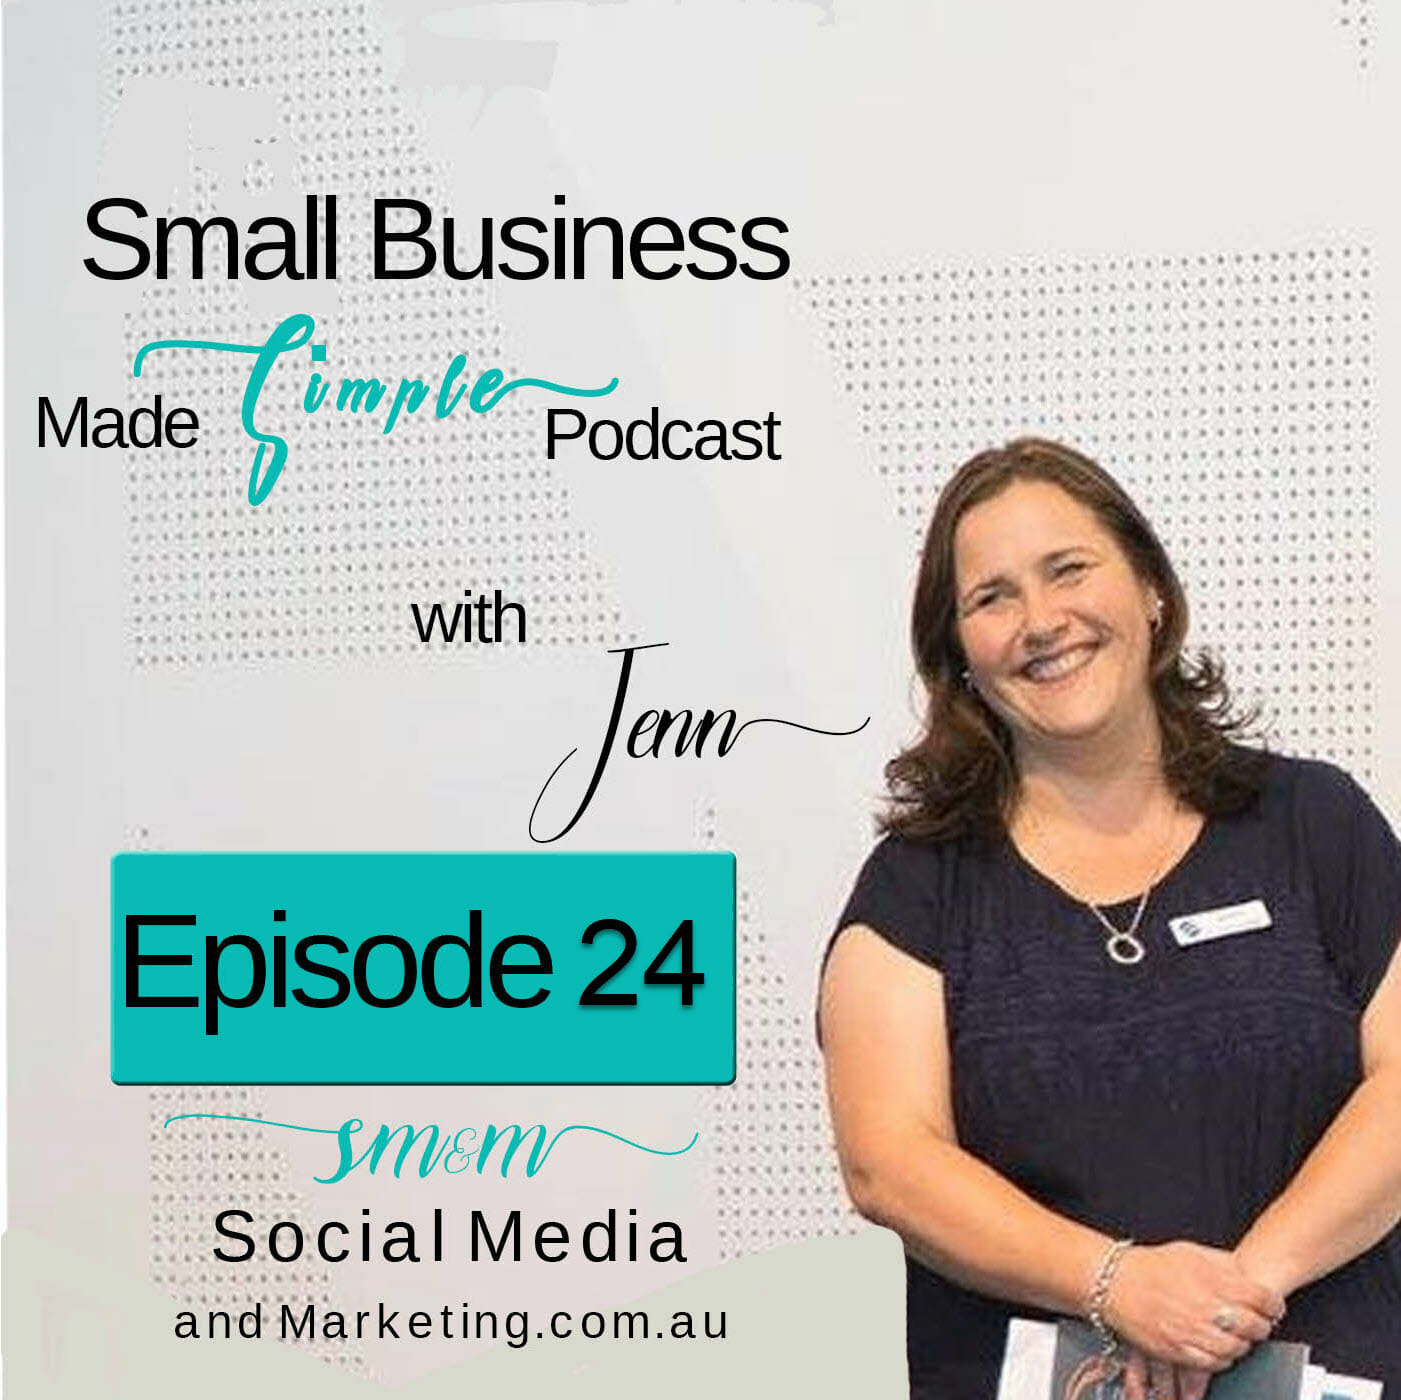 EPISODE 24 – OFFLINE MARKETING – THE POWER OF PRINT